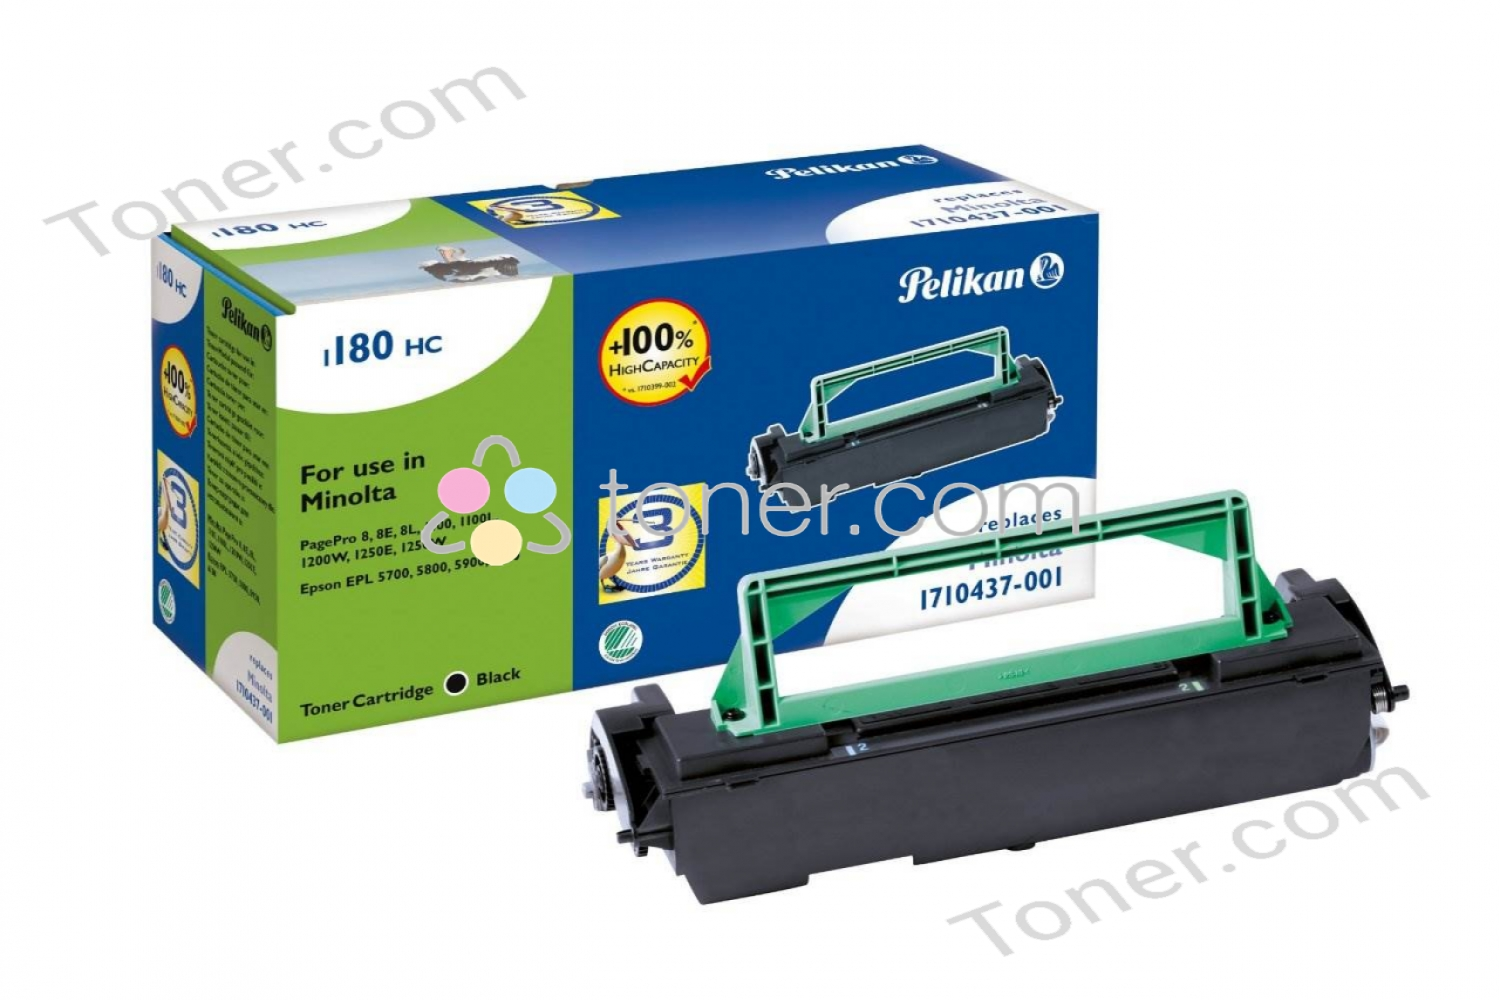 EPSON 5700I DRIVERS FOR WINDOWS 10